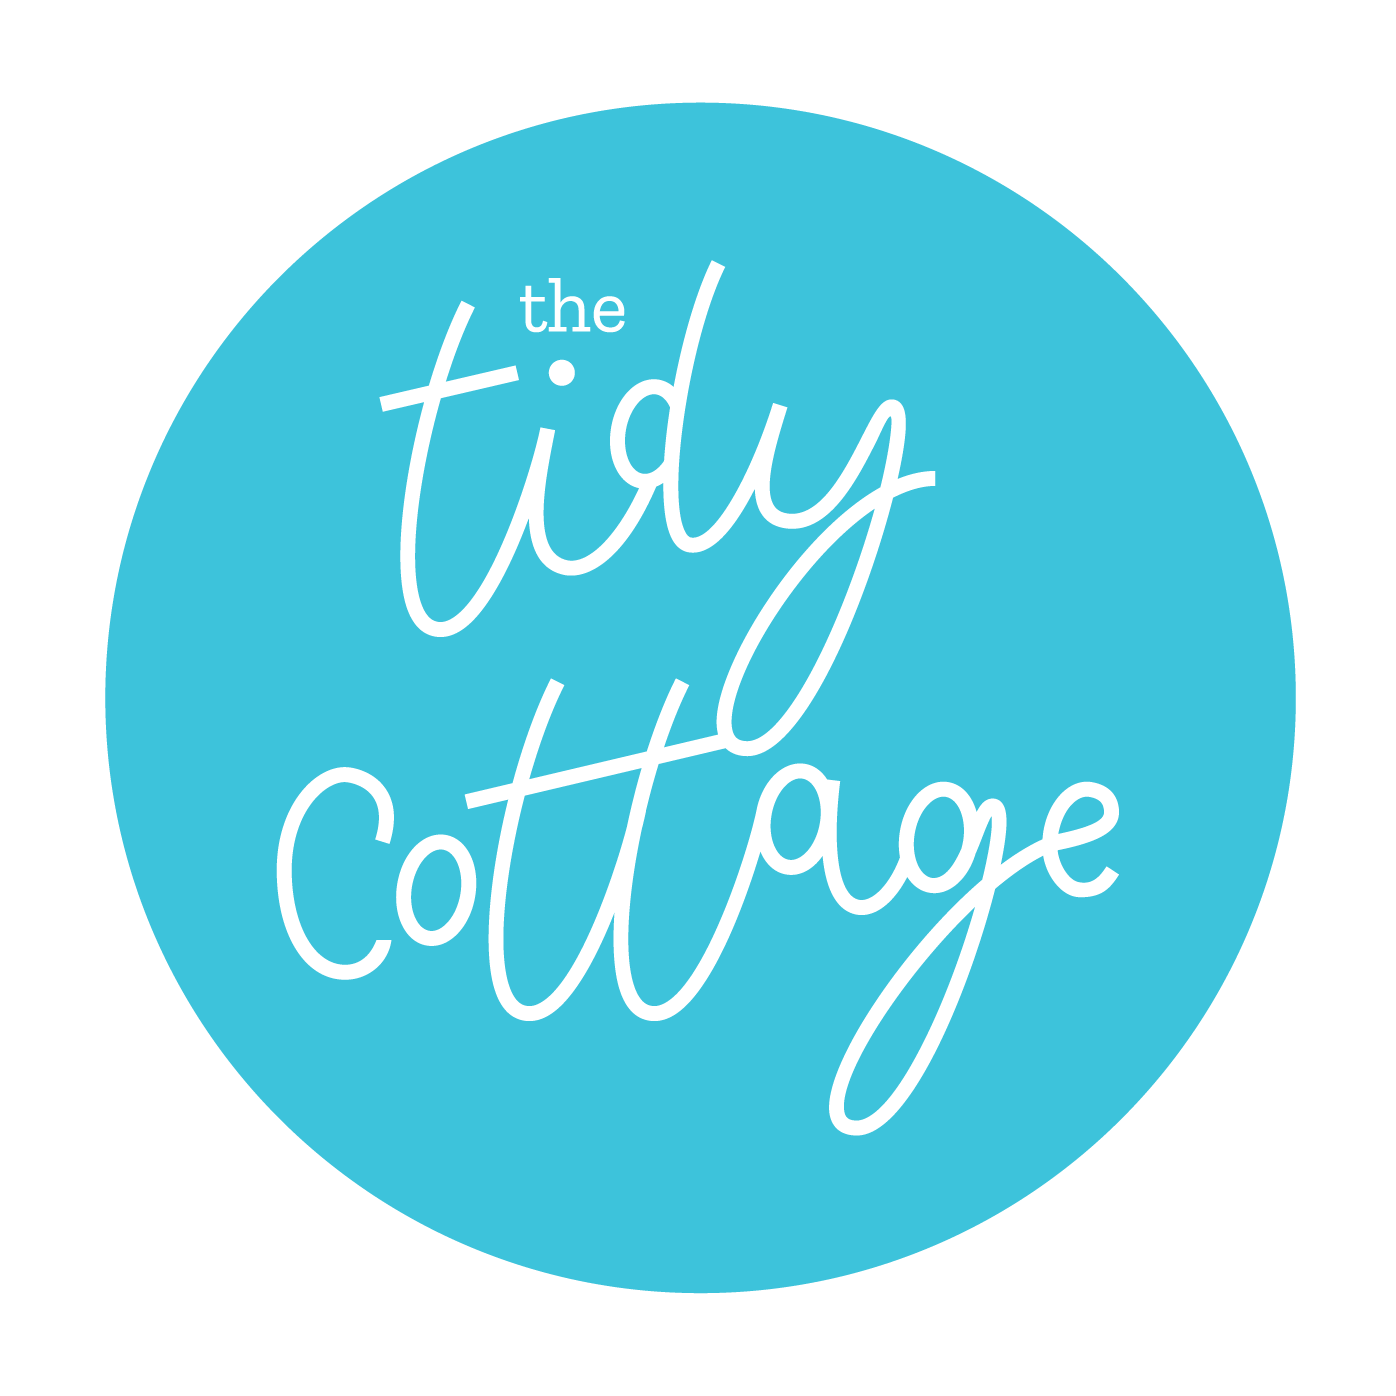 The Tidy Cottage - Tidy PNG